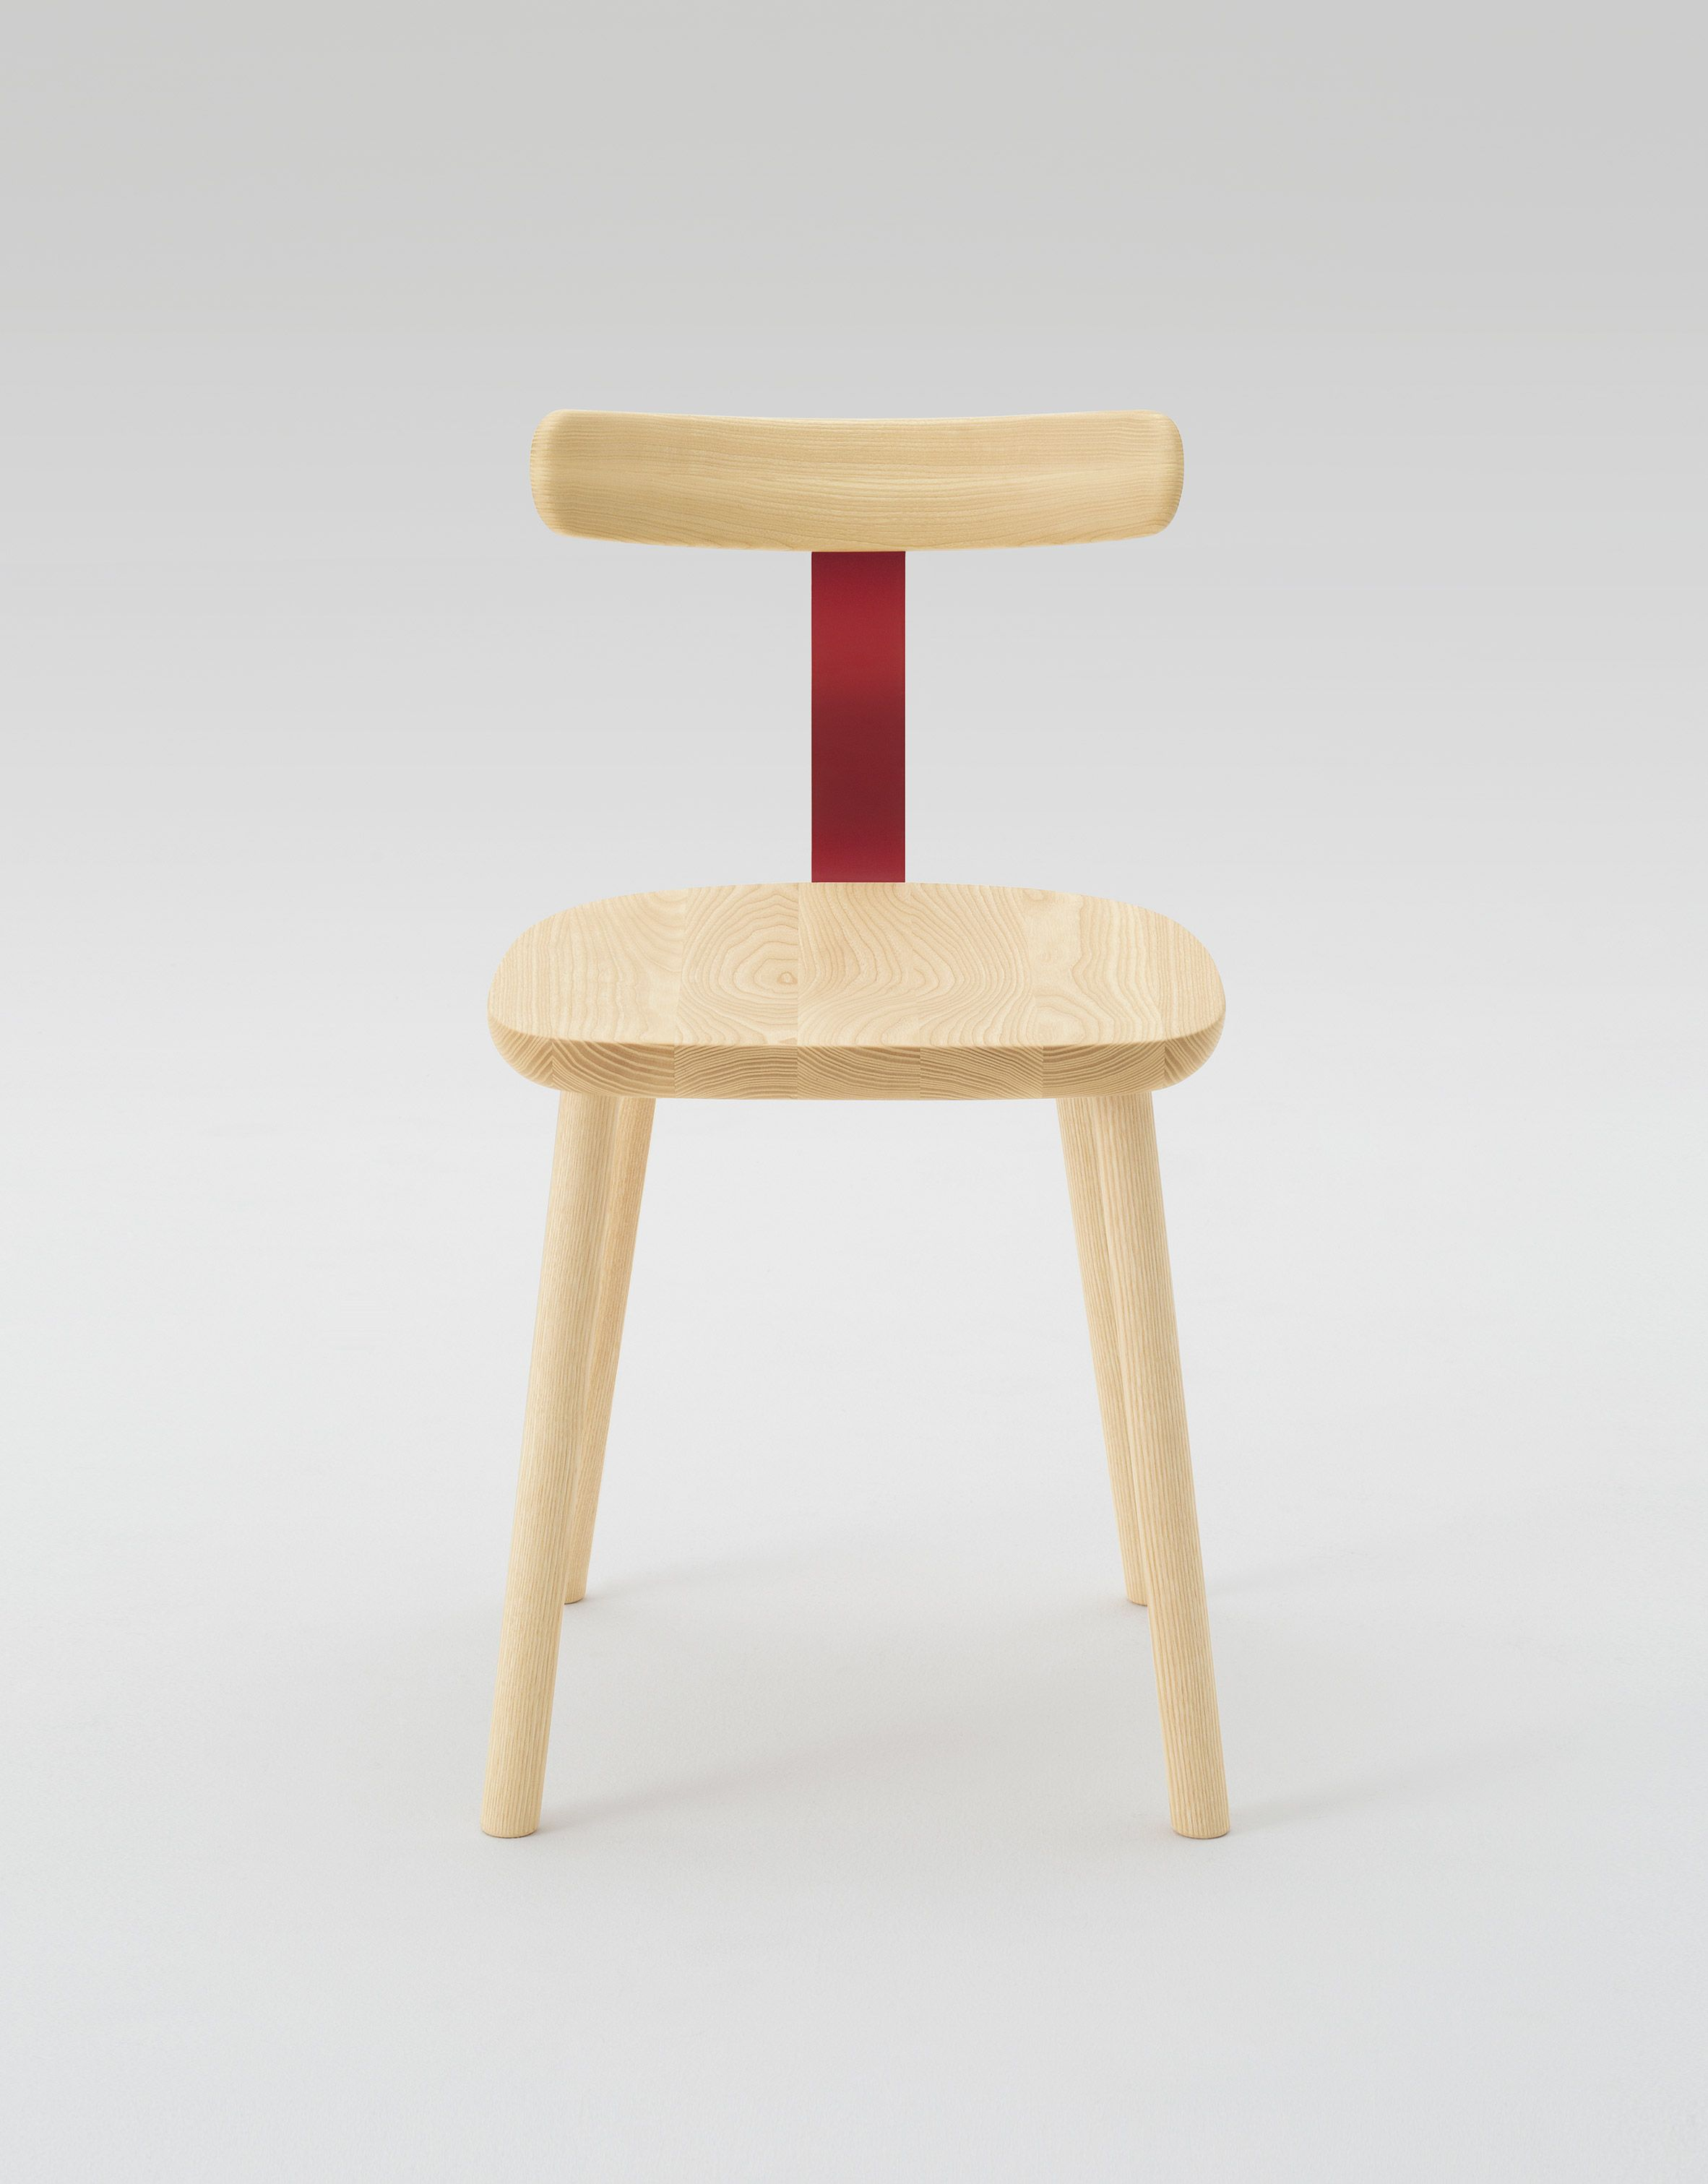 50 sleek funky and weird chair designs webdesigner depot and weird - Jasper Morrison Expands Wood And Steel Furniture Collection For Maruni